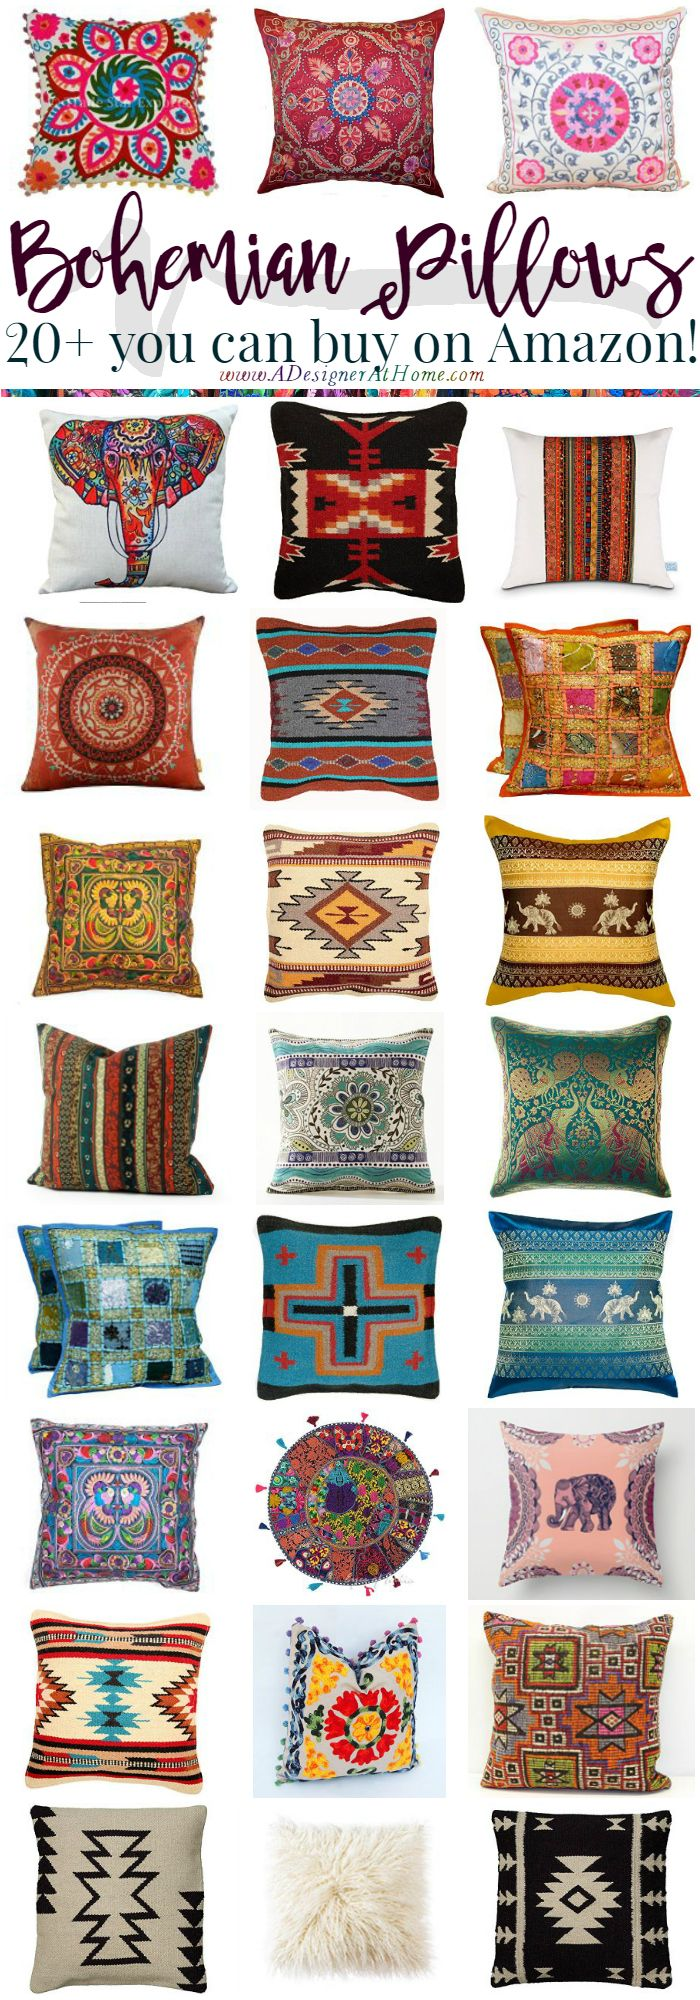 Where To Buy: Bohemian Pillows